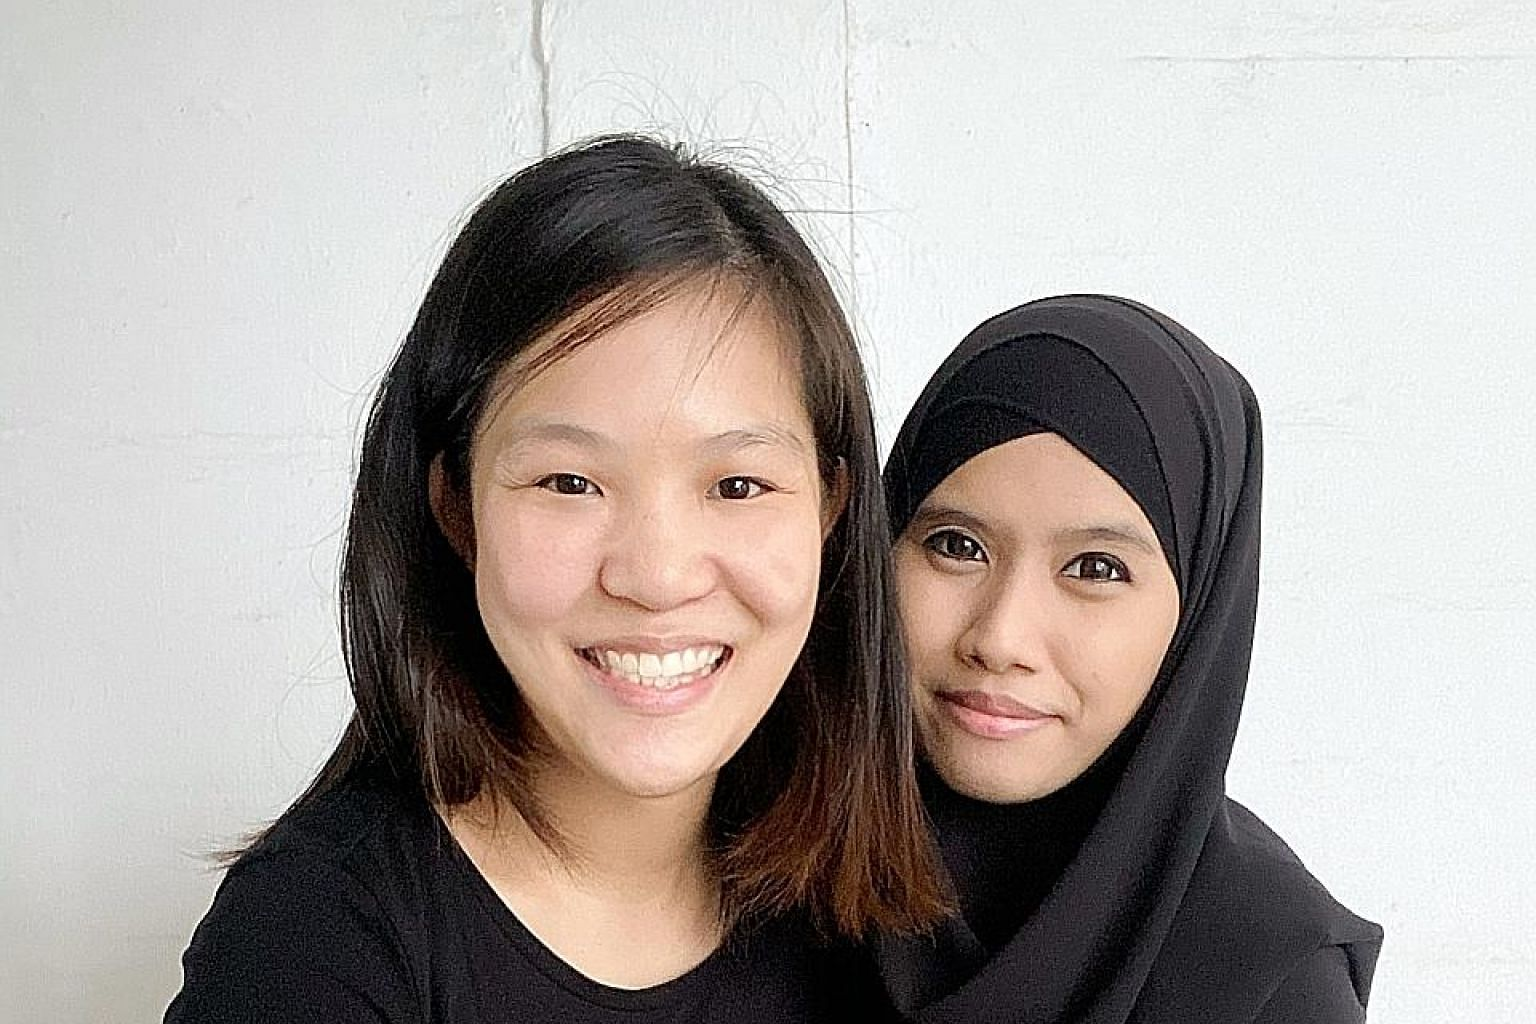 Ms Samantha Kwan helped five mothers, including Madam Siti Khadijah (both right), launch home businesses. She set up an order platform, managed deliveries and got a friend to create visual assets such as photos and videos that could be used on social